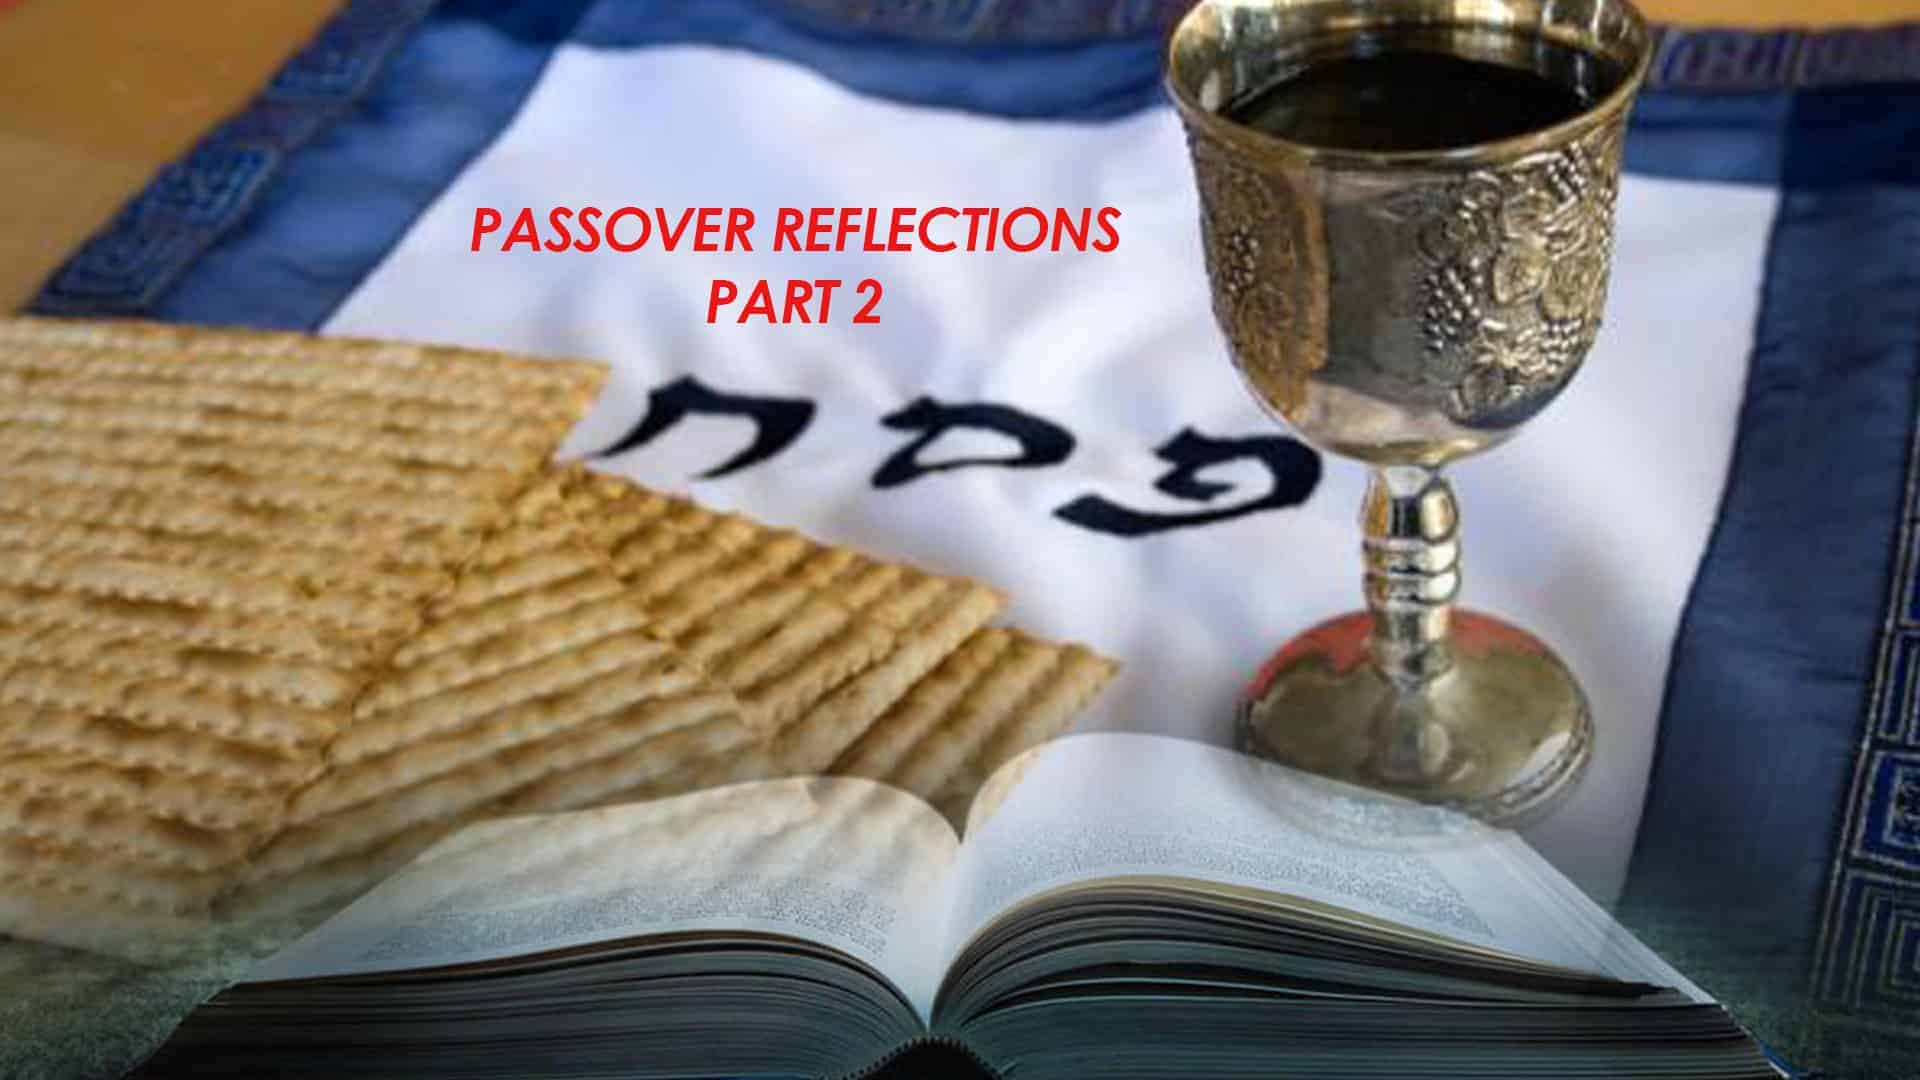 Passover Reflections Part 2